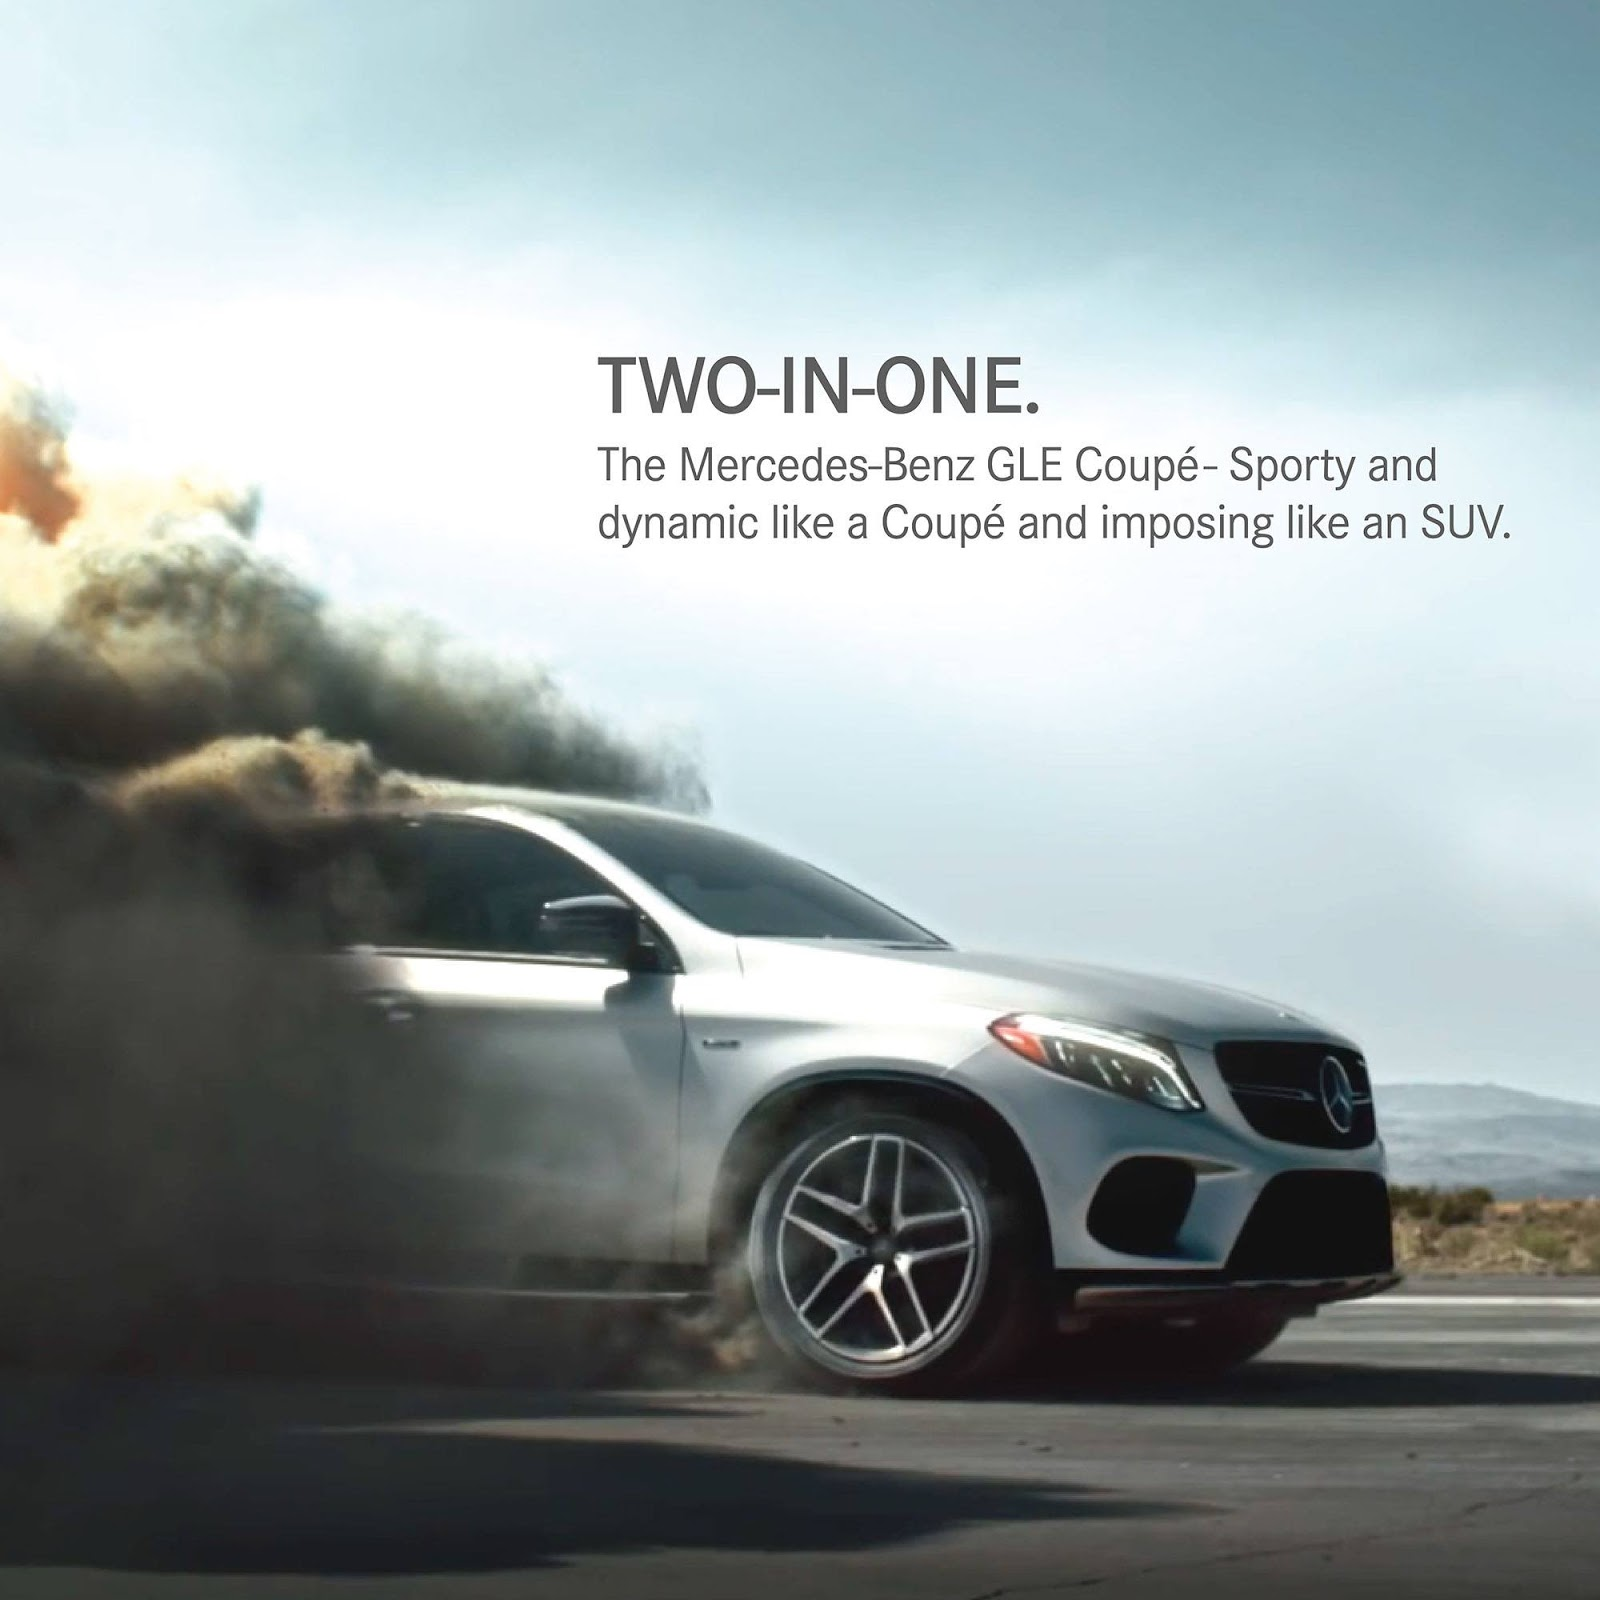 2016 Mercedes Benz Gle Coupe Suspension: SouLSteer.com: Mercedes-Benz GLE 450 AMG Coupé Launched In